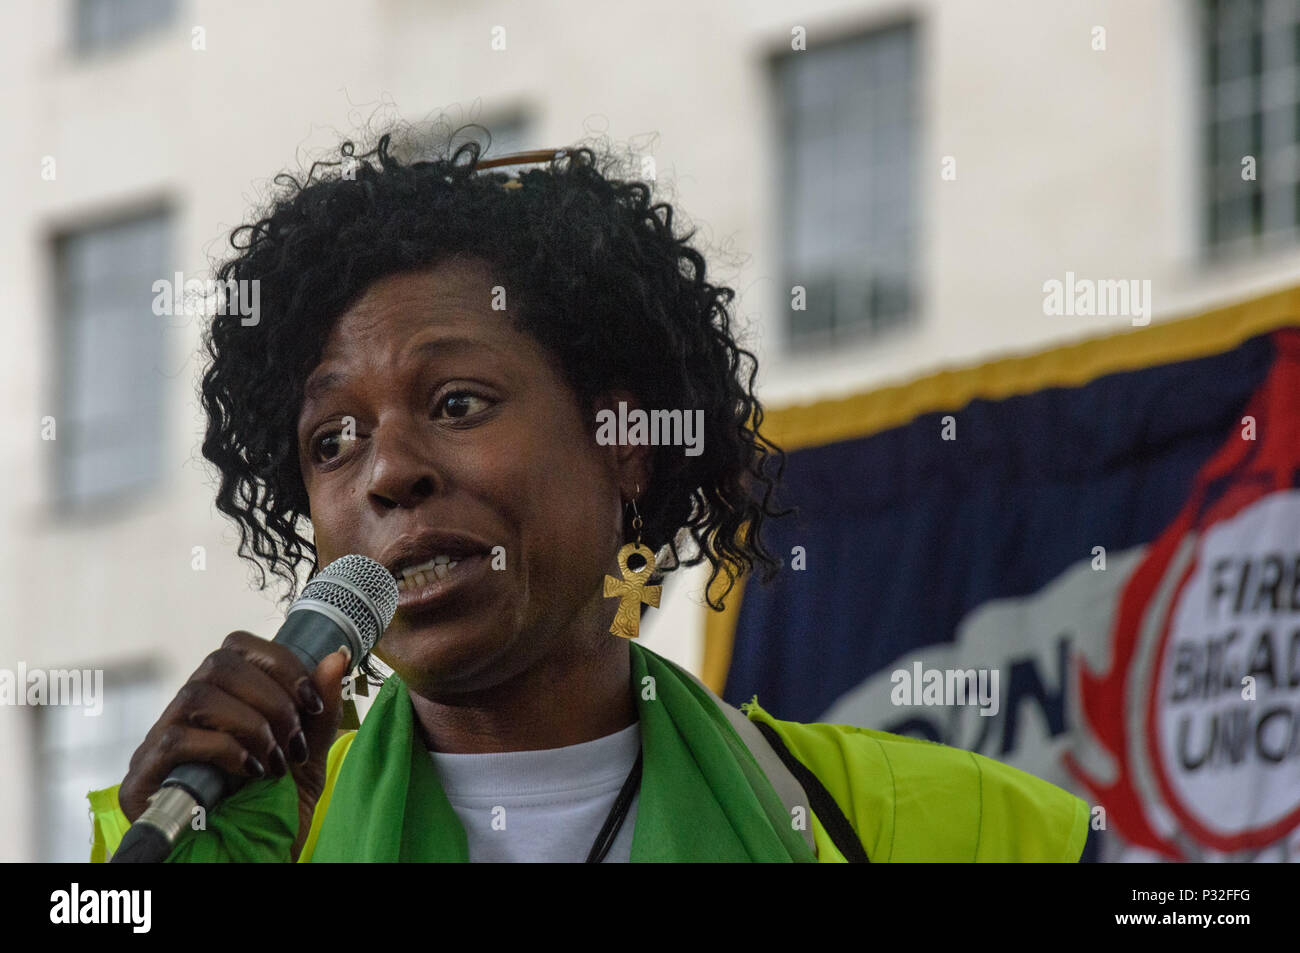 London, UK. 16th June 2018. Yvette Williams from Justice4Grenfell at the protest at Downing St in solidarity with the 72 killed and the survivors of the Grenfell fire a year ago organised by Justice4Grenfell and the FBU (Fire Brigades Union.) After some speeches they marched to the Home Office for a brief protest before returning to Downing St for more speeches. mmodat Credit: Peter Marshall/Alamy Live News - Stock Image